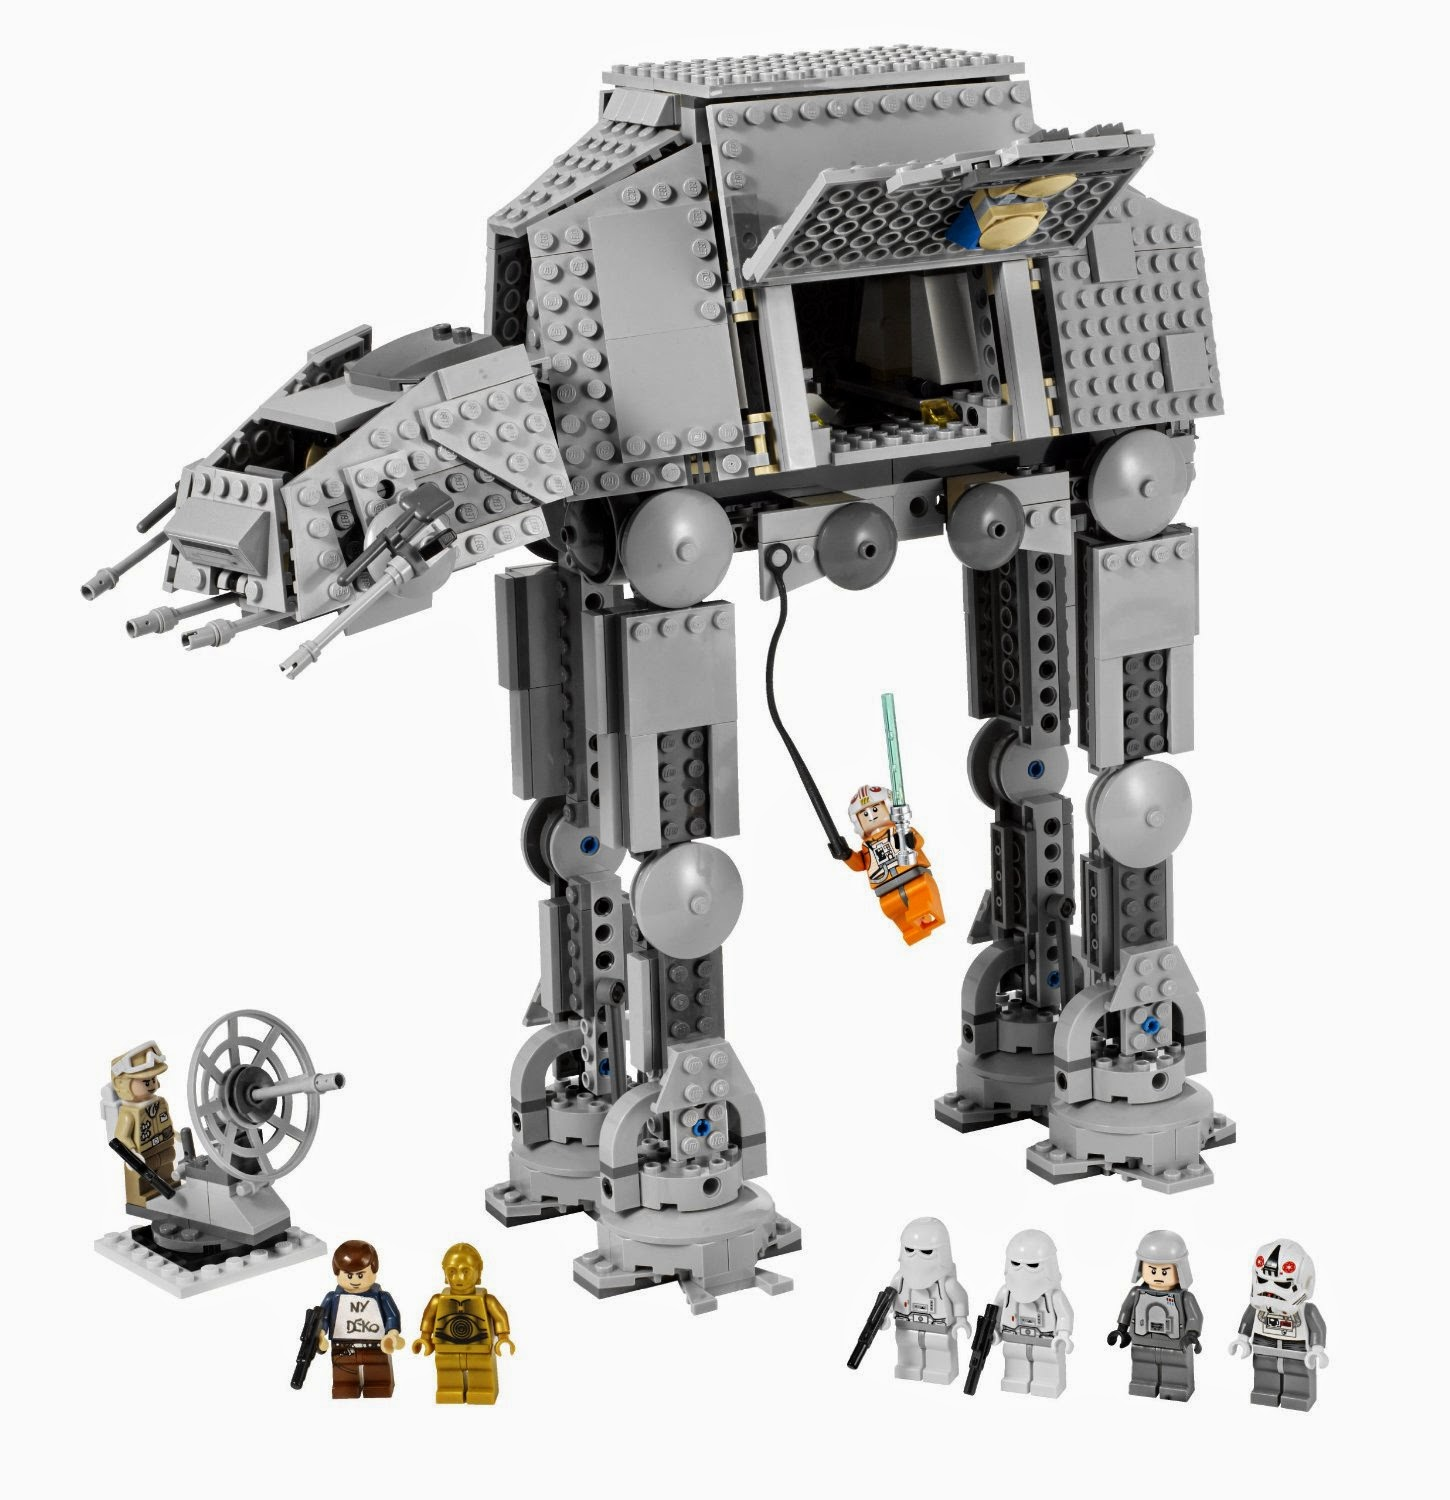 Lego Star Wars AT-AT (8129)